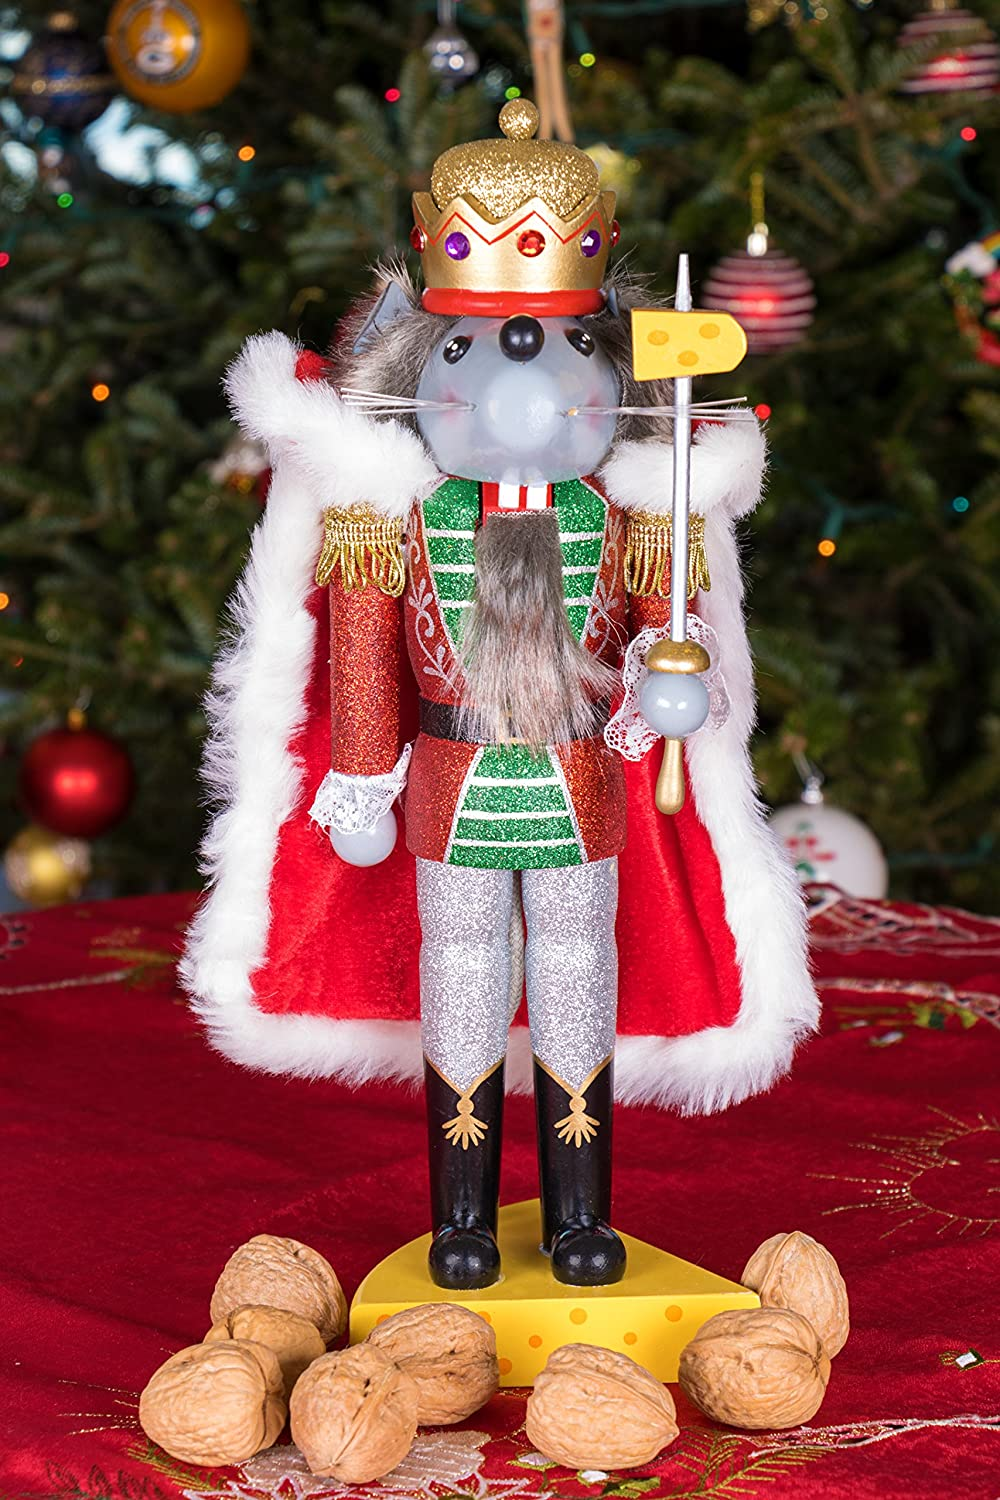 Amazon.com: Traditional Wooden Mouse King Nutcracker by Clever ...